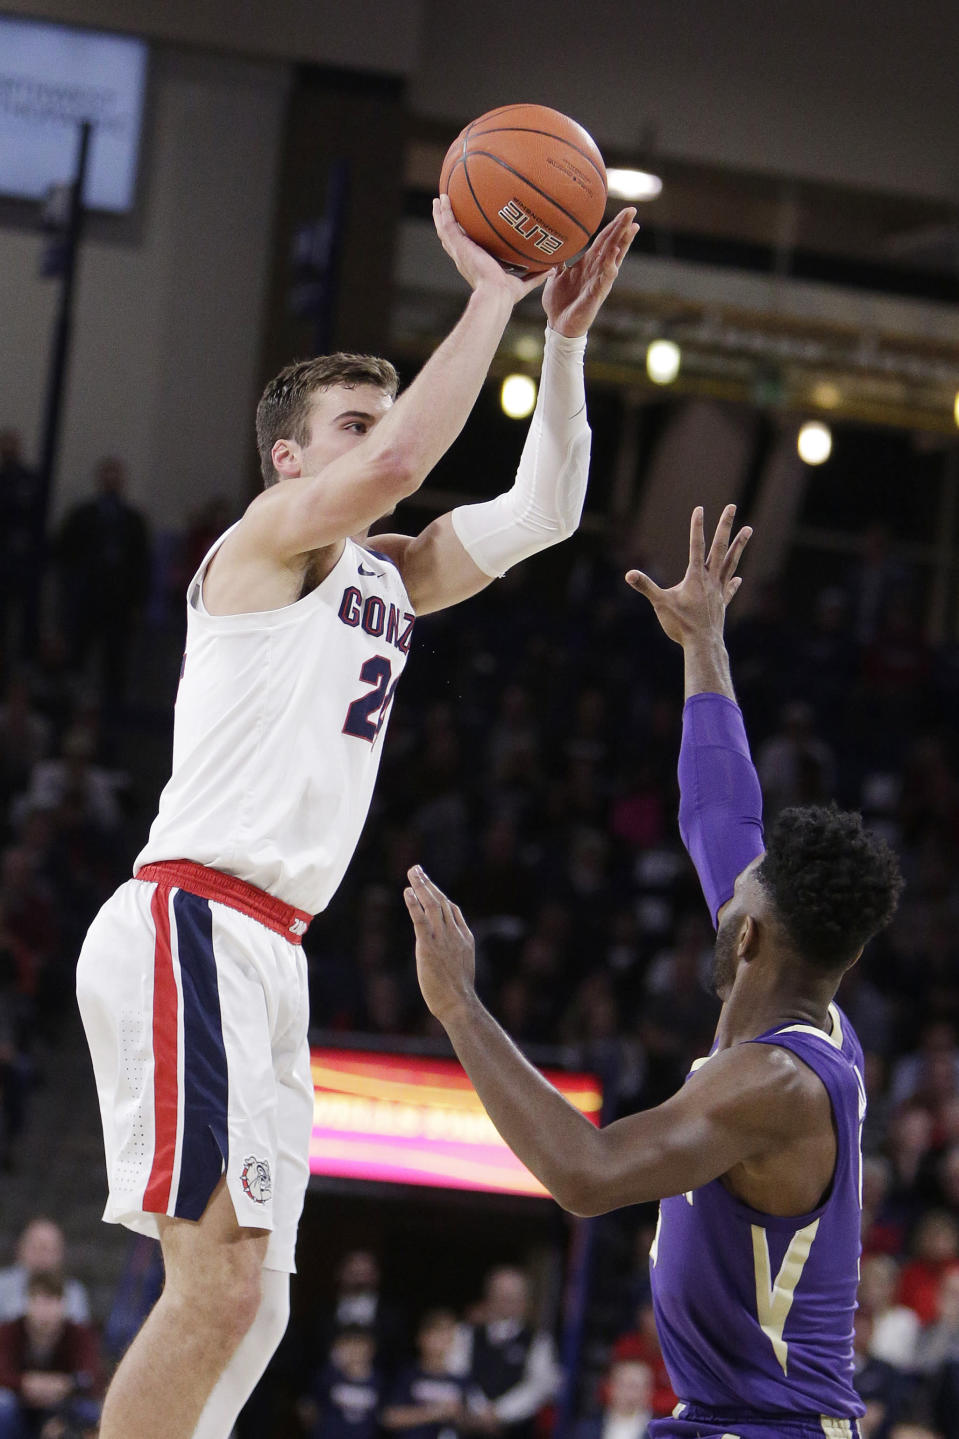 Gonzaga forward Corey Kispert, left, shoots while defended by Washington guard Jaylen Nowell during the first half of an NCAA college basketball game in Spokane, Wash., Wednesday, Dec. 5, 2018. (AP Photo/Young Kwak)